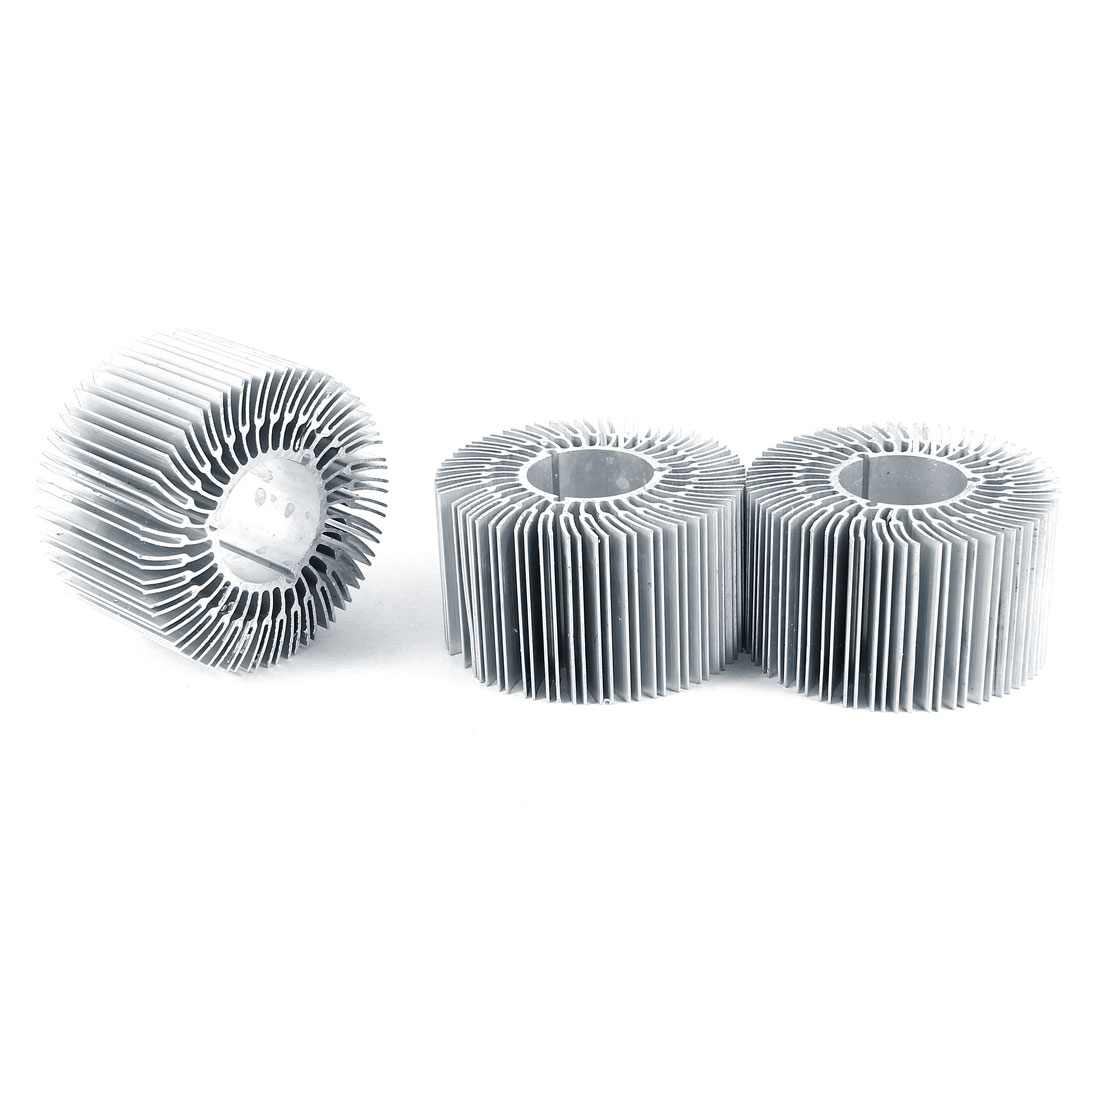 3 Pieces Round Shape 70mm OD 28mm ID 40mm Height LED Light Heatsinks Cooling Fin